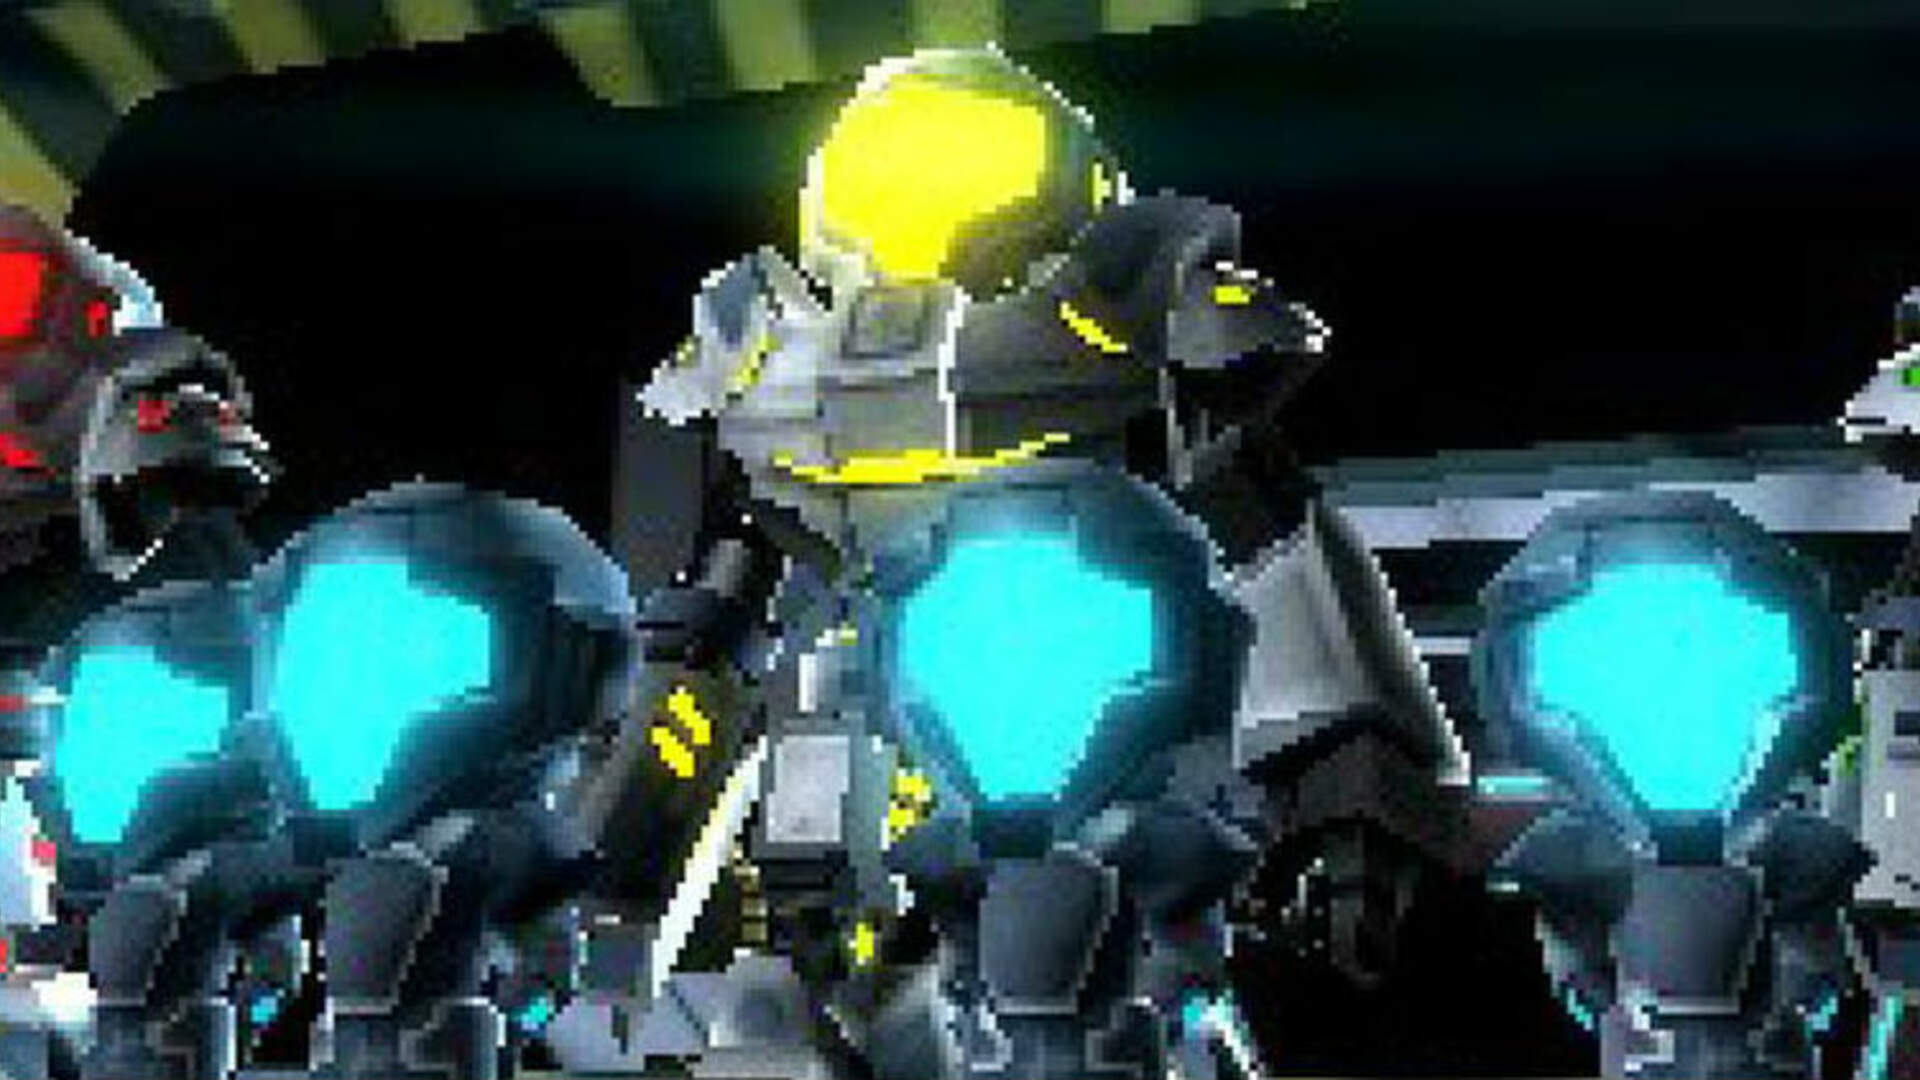 Download a Demo of Metroid Prime: Federation Force's Blast Ball